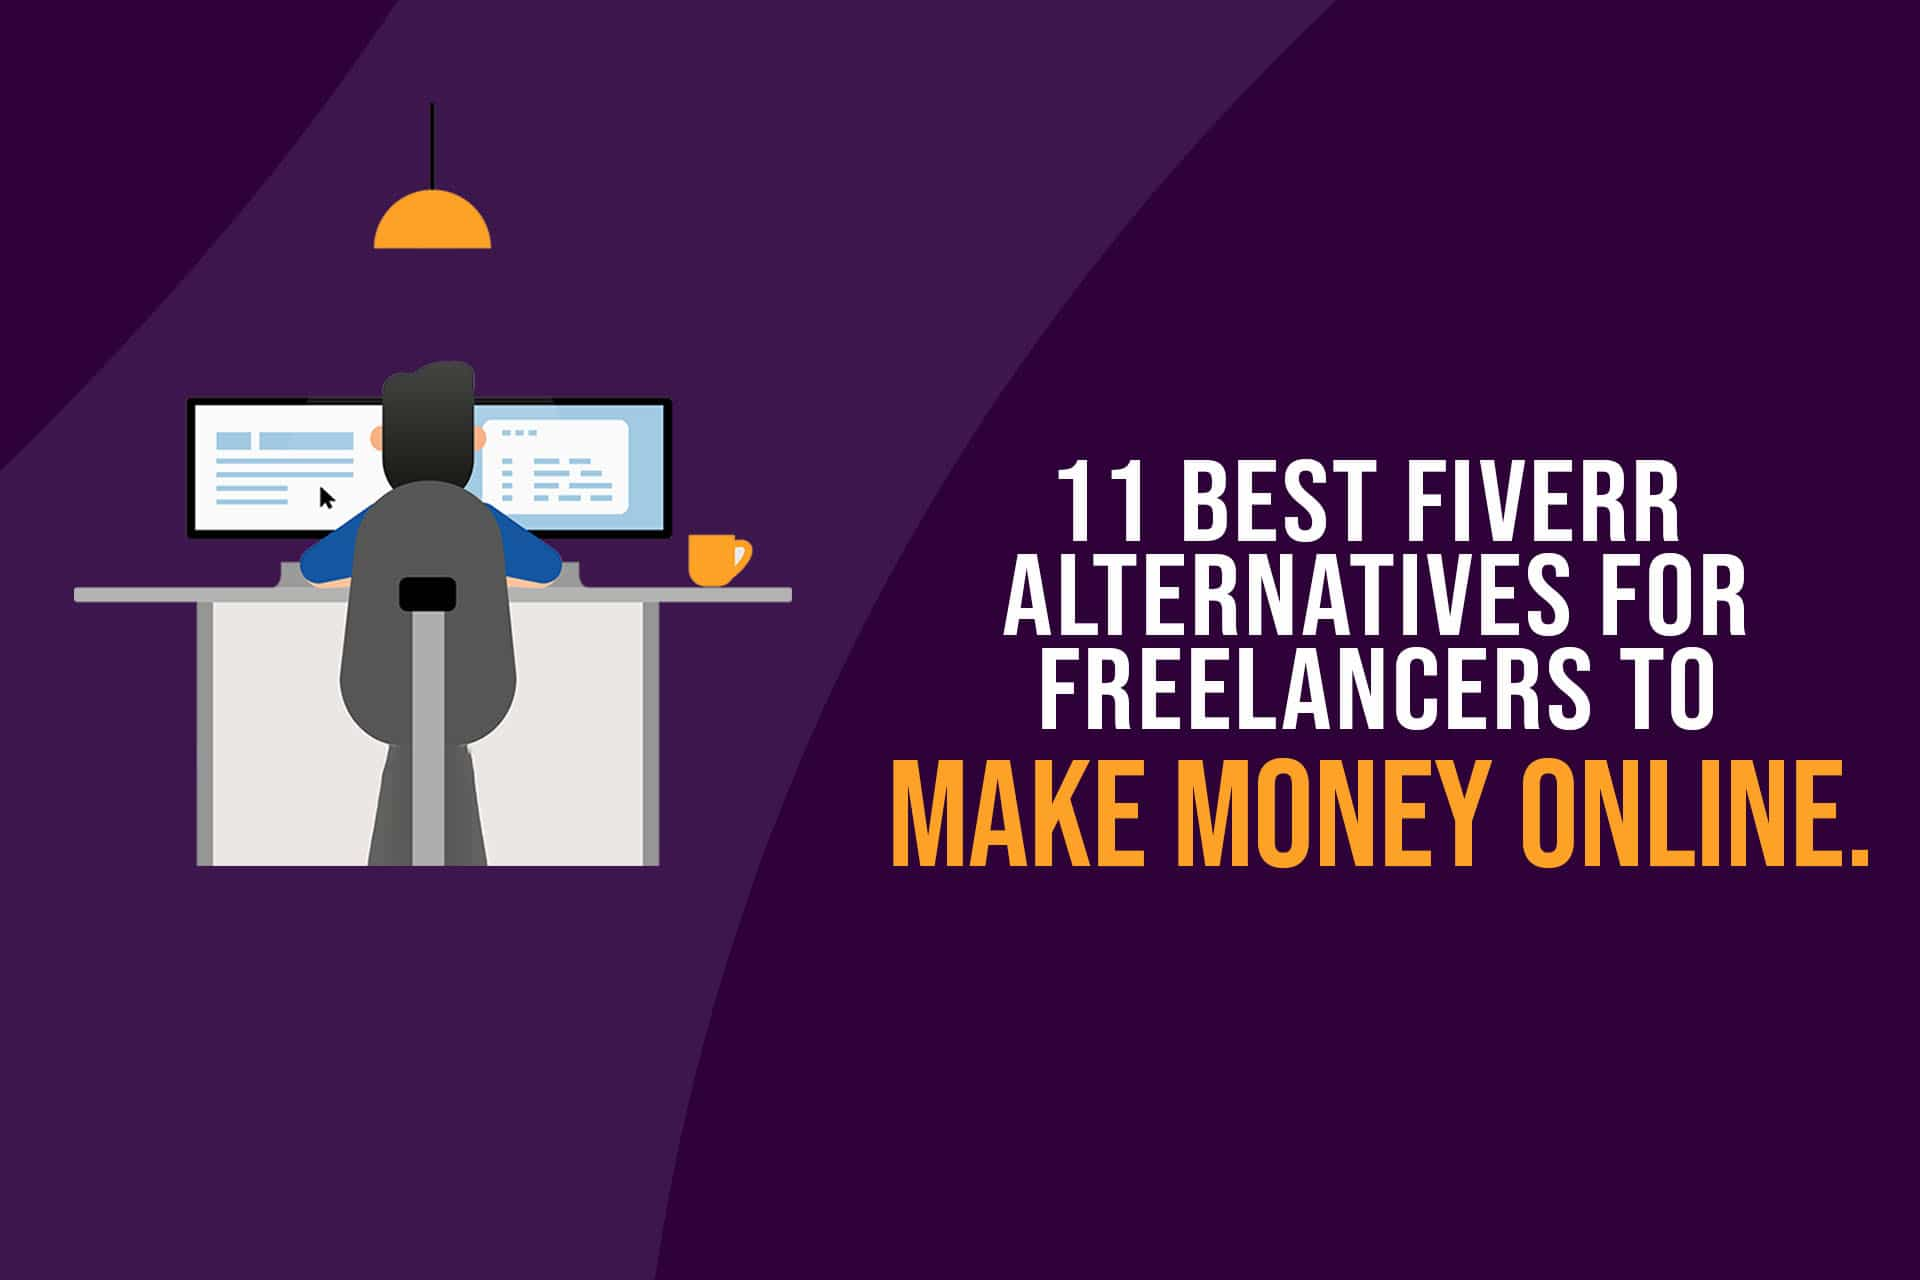 11 Best Fiverr Alternatives For Freelancers to Make Money Online